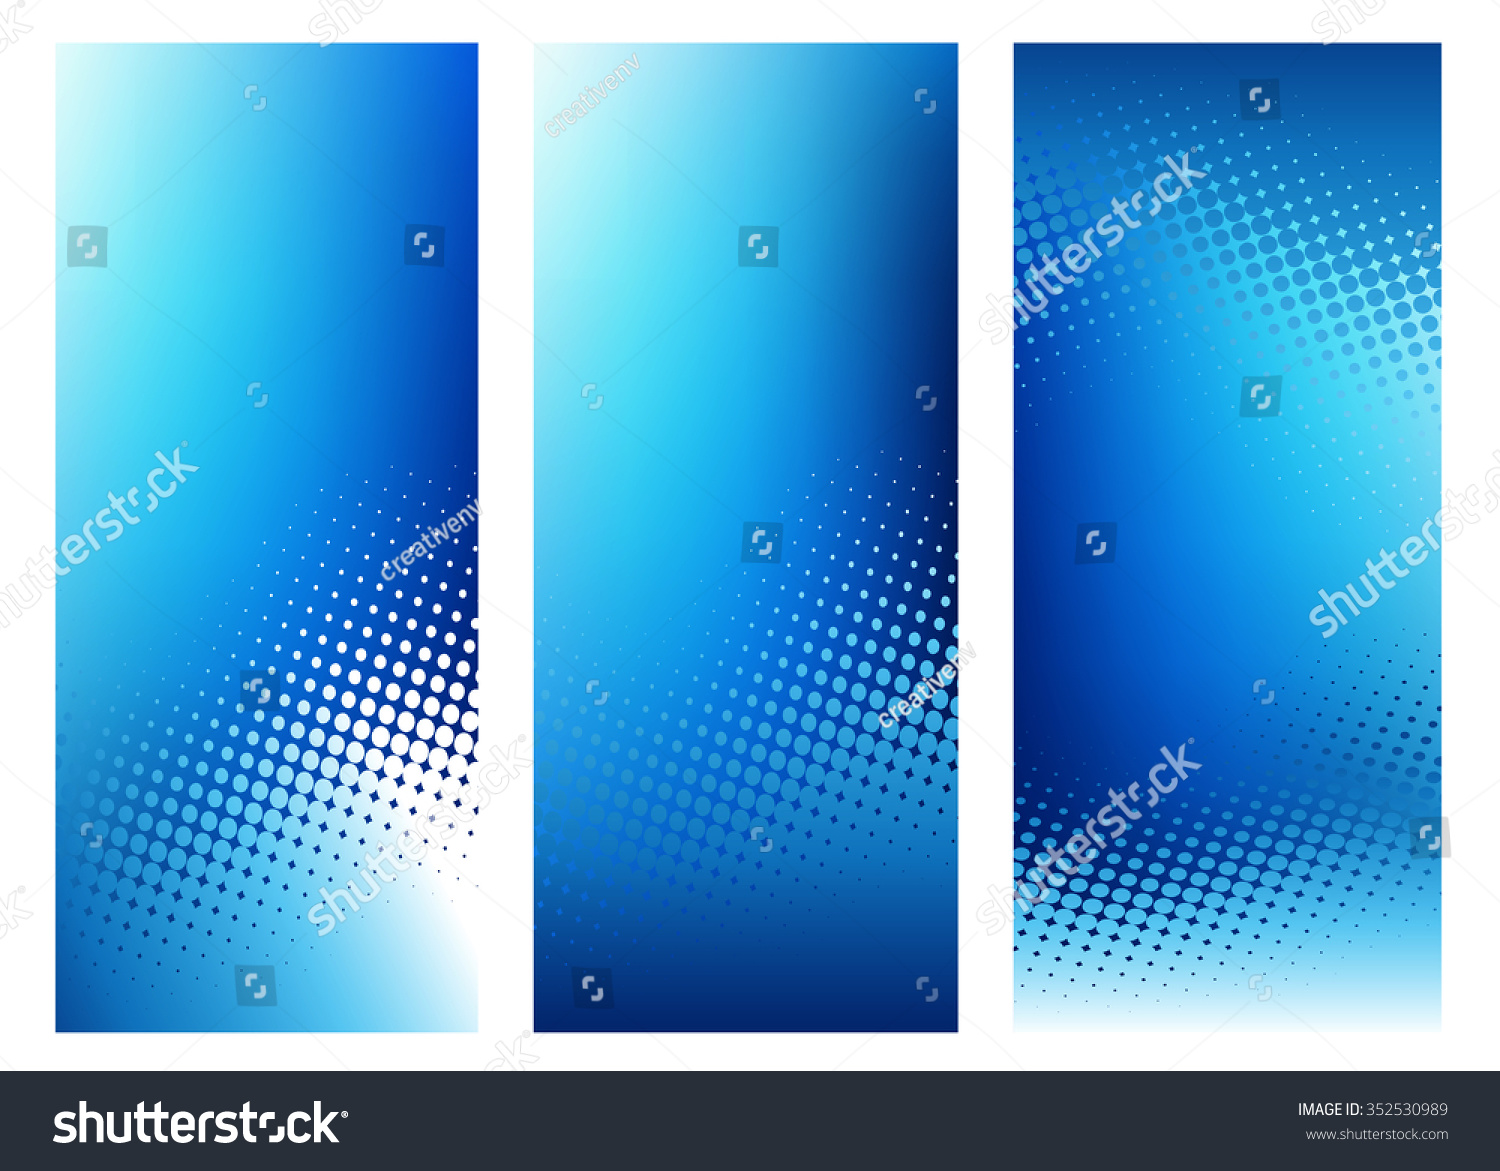 Three Vertical High Resolution Abstract Dark Blue Graphic Design Background Templates For Various Communication Arts And